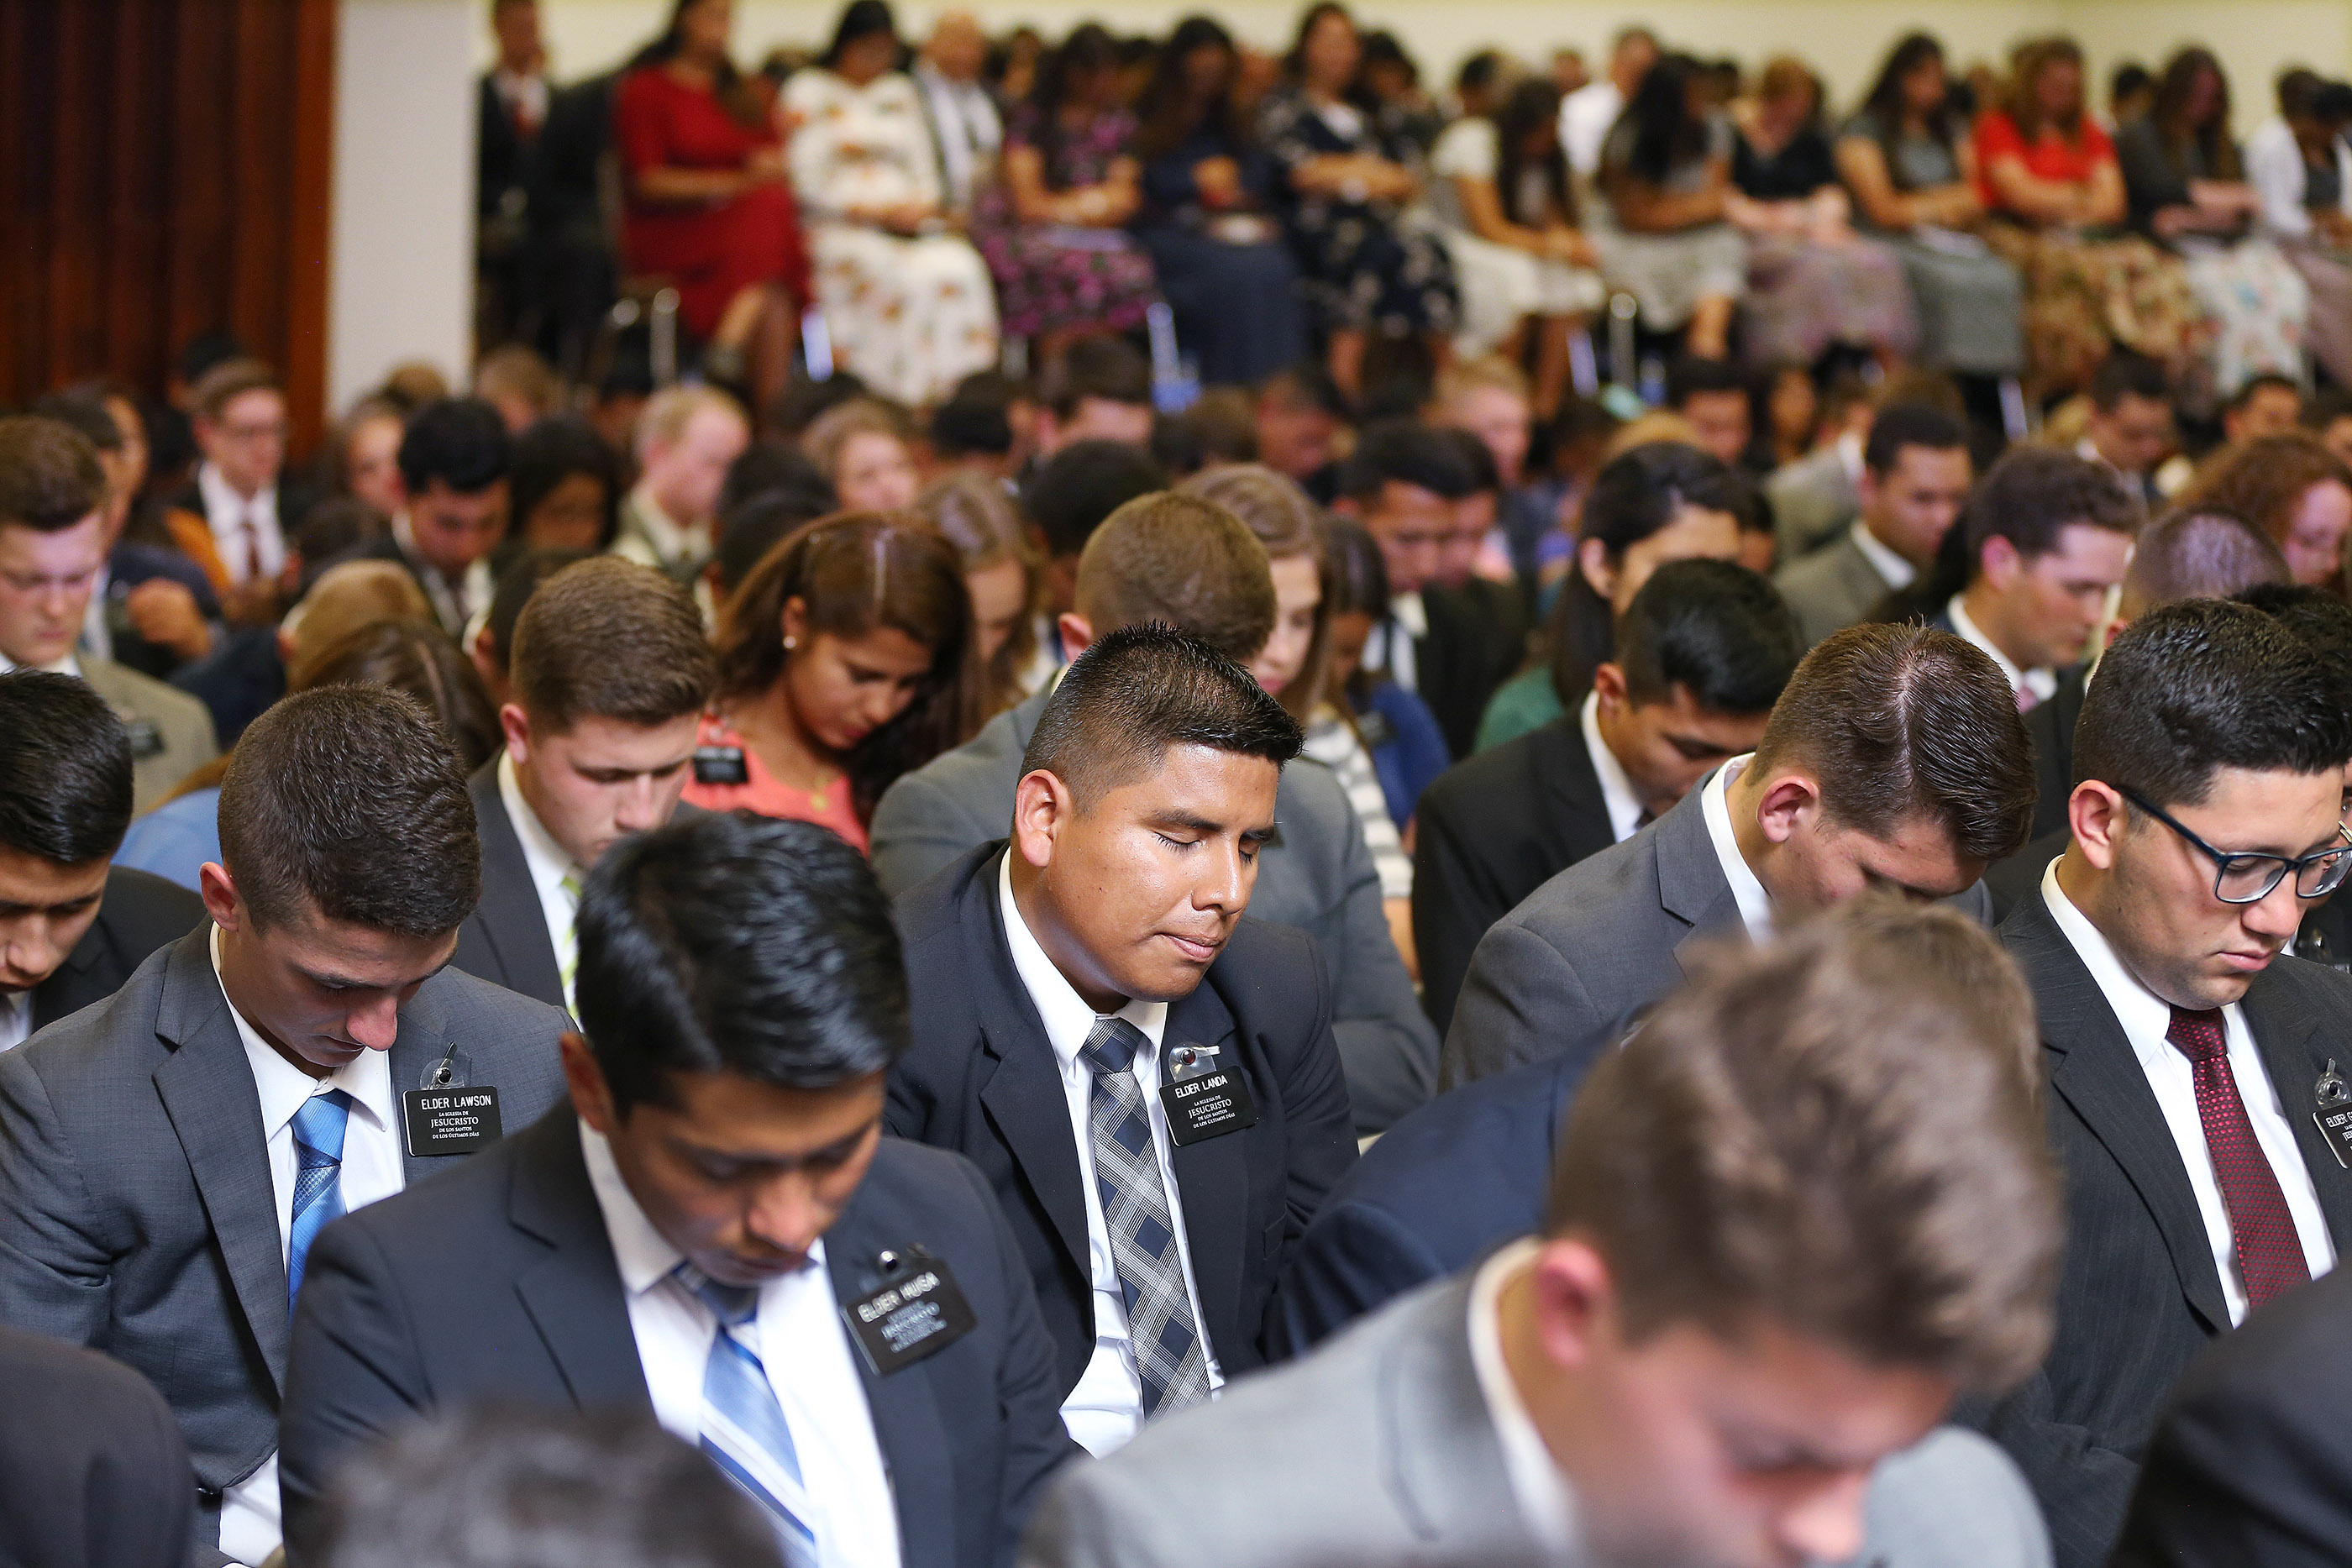 Missionaries listen to the prayer during their meeting with President Russell M. Nelson of The Church of Jesus Christ of Latter-day Saints and Elder Gary E. Stevenson of the Quorum of the Twelve Apostles in Lima, Peru, on Oct. 20, 2018.